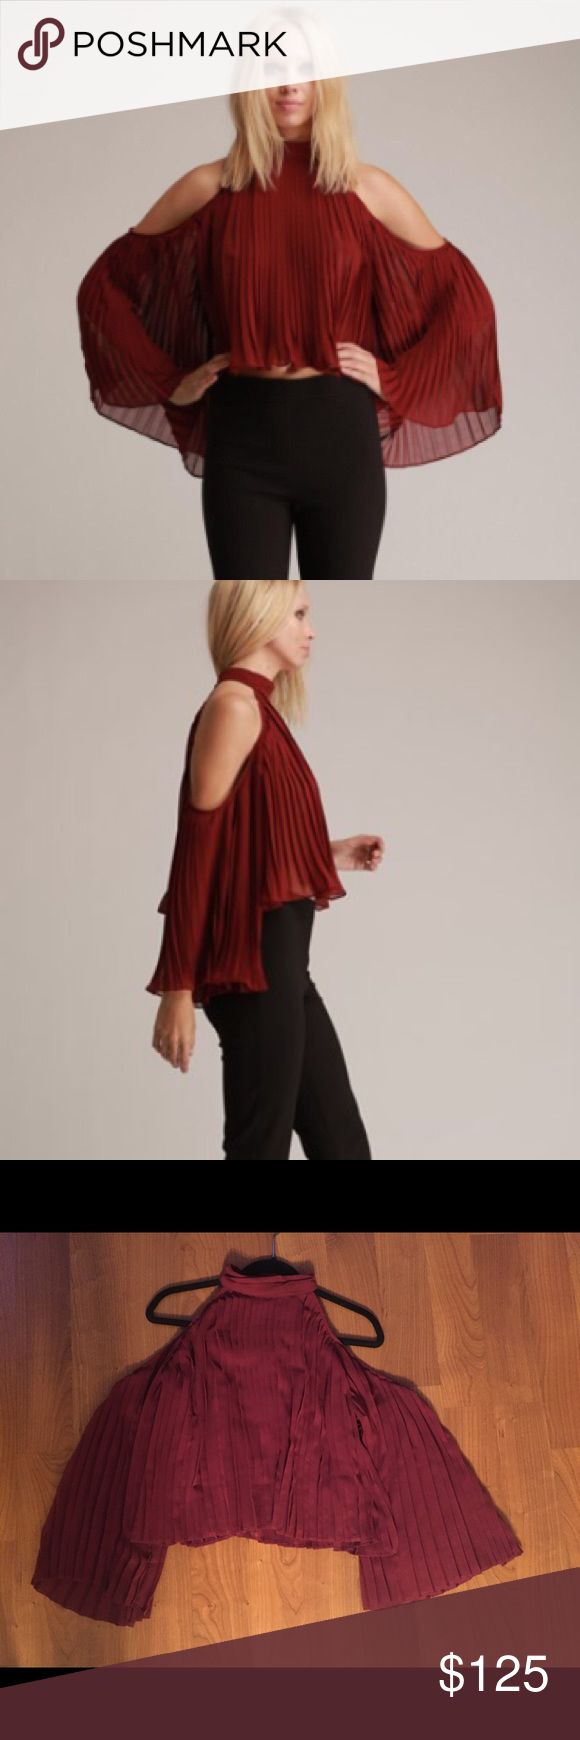 Walter Baker Mila Top Size Small New with tags! Walter Baker Tops